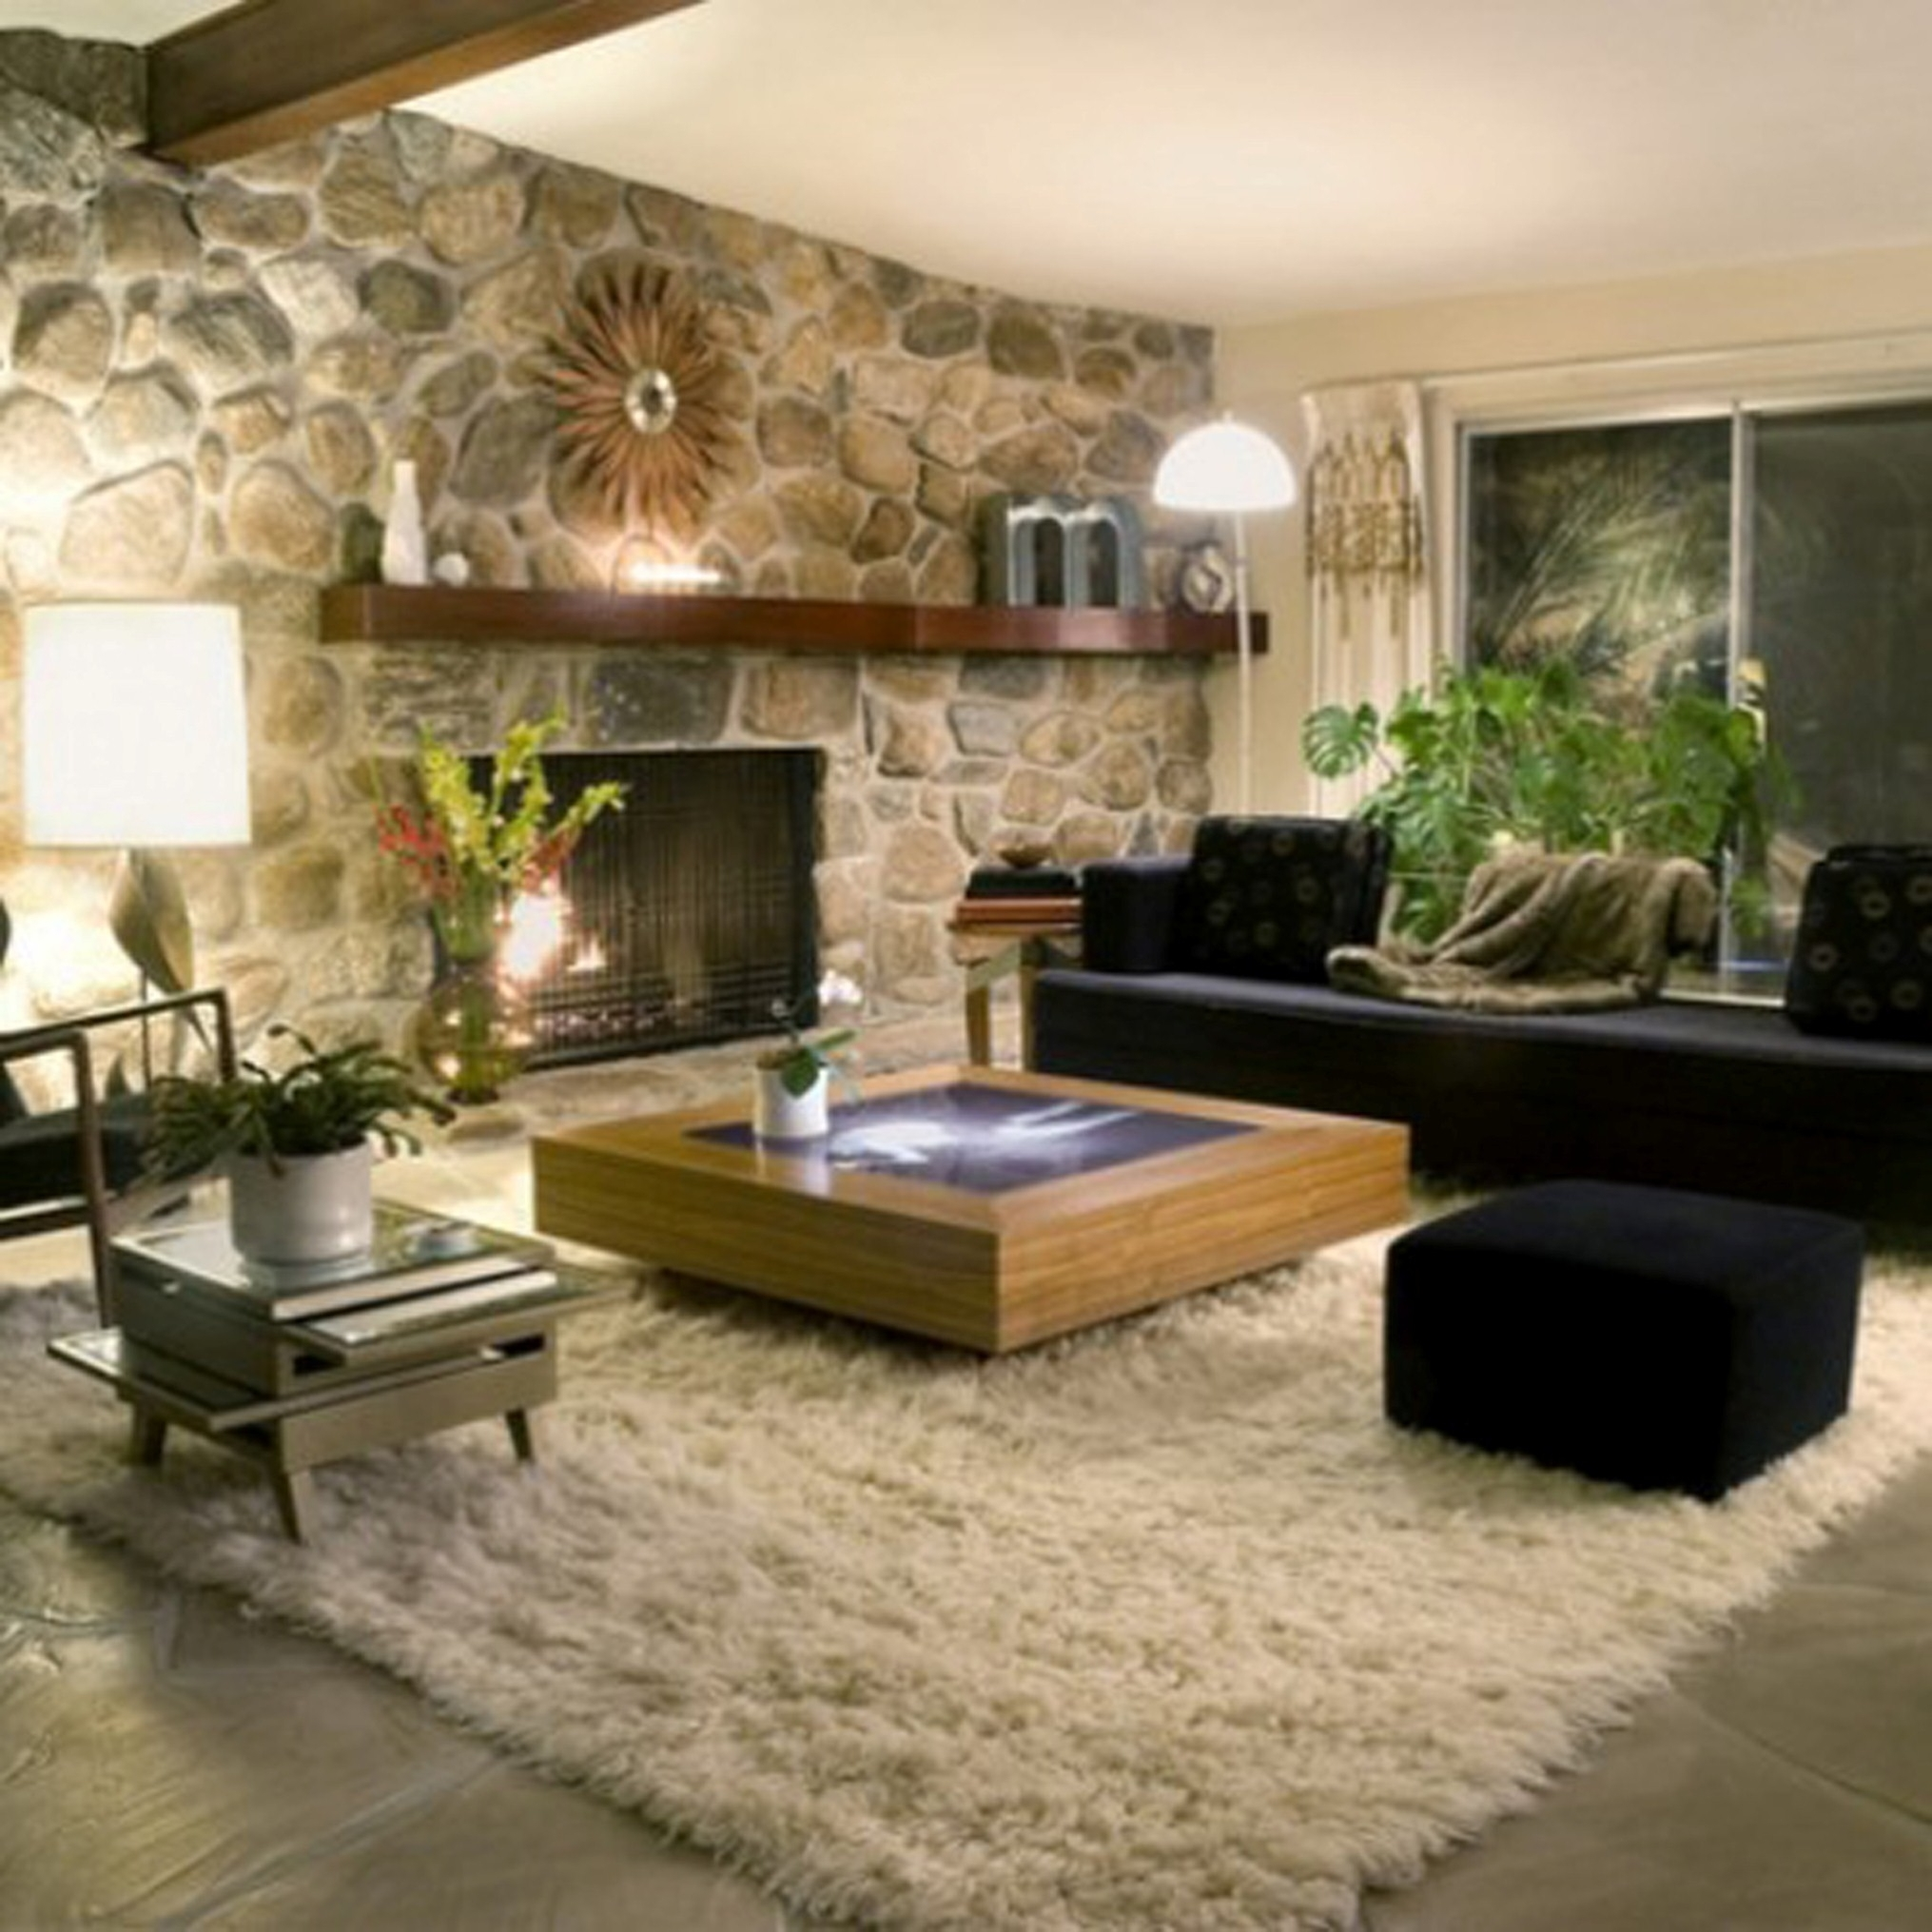 Modern Living Room Decoration With Sweet Black Fabric Sofa Design Even Charming Natural Stone Wall Decor (Image 13 of 30)